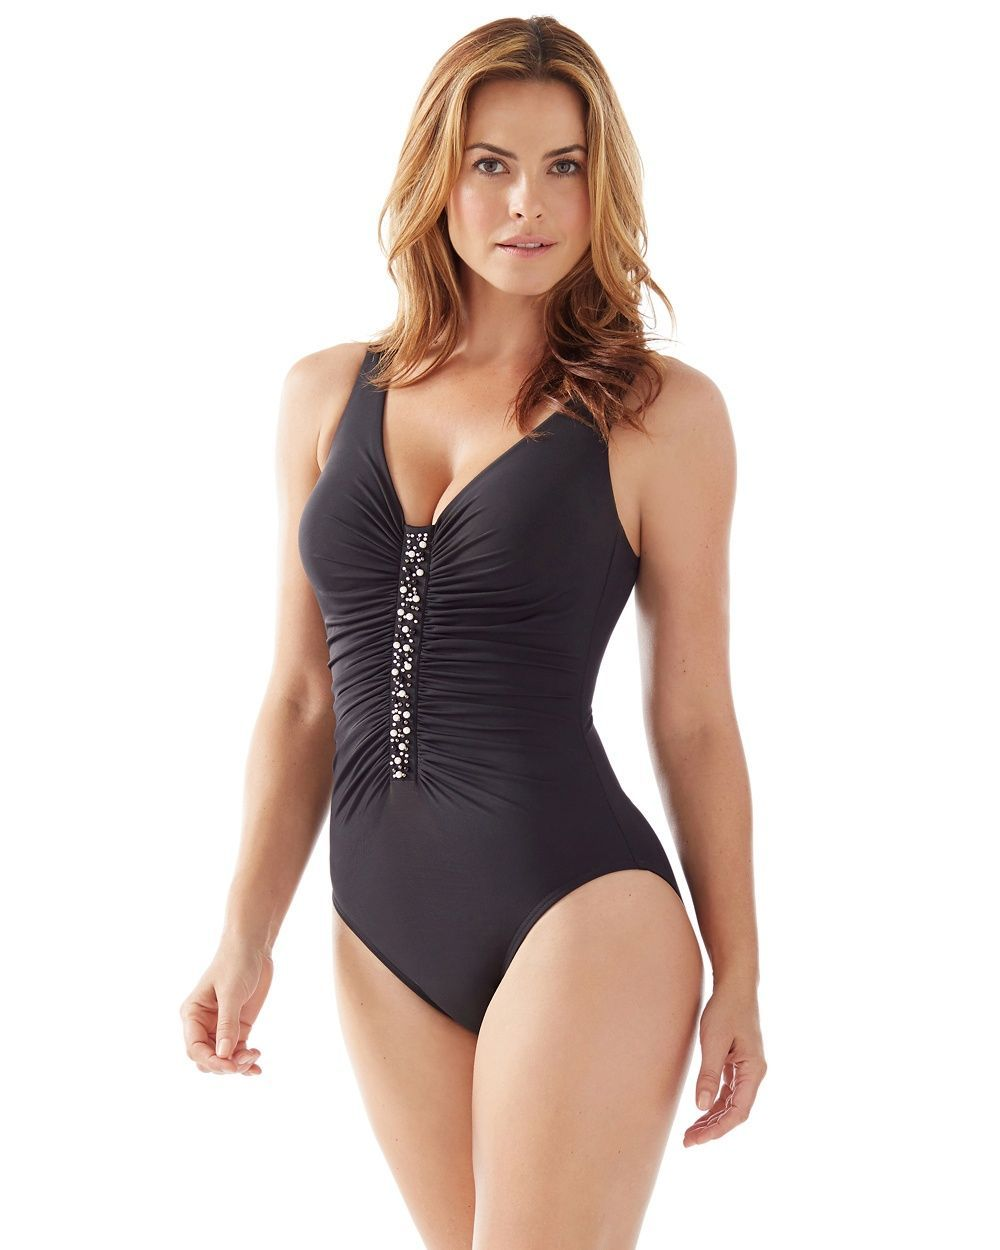 c950f738dcdb8 Chico's Women's Miraclesuit for Chico's Jewel Box One-Piece Swimsuit ...